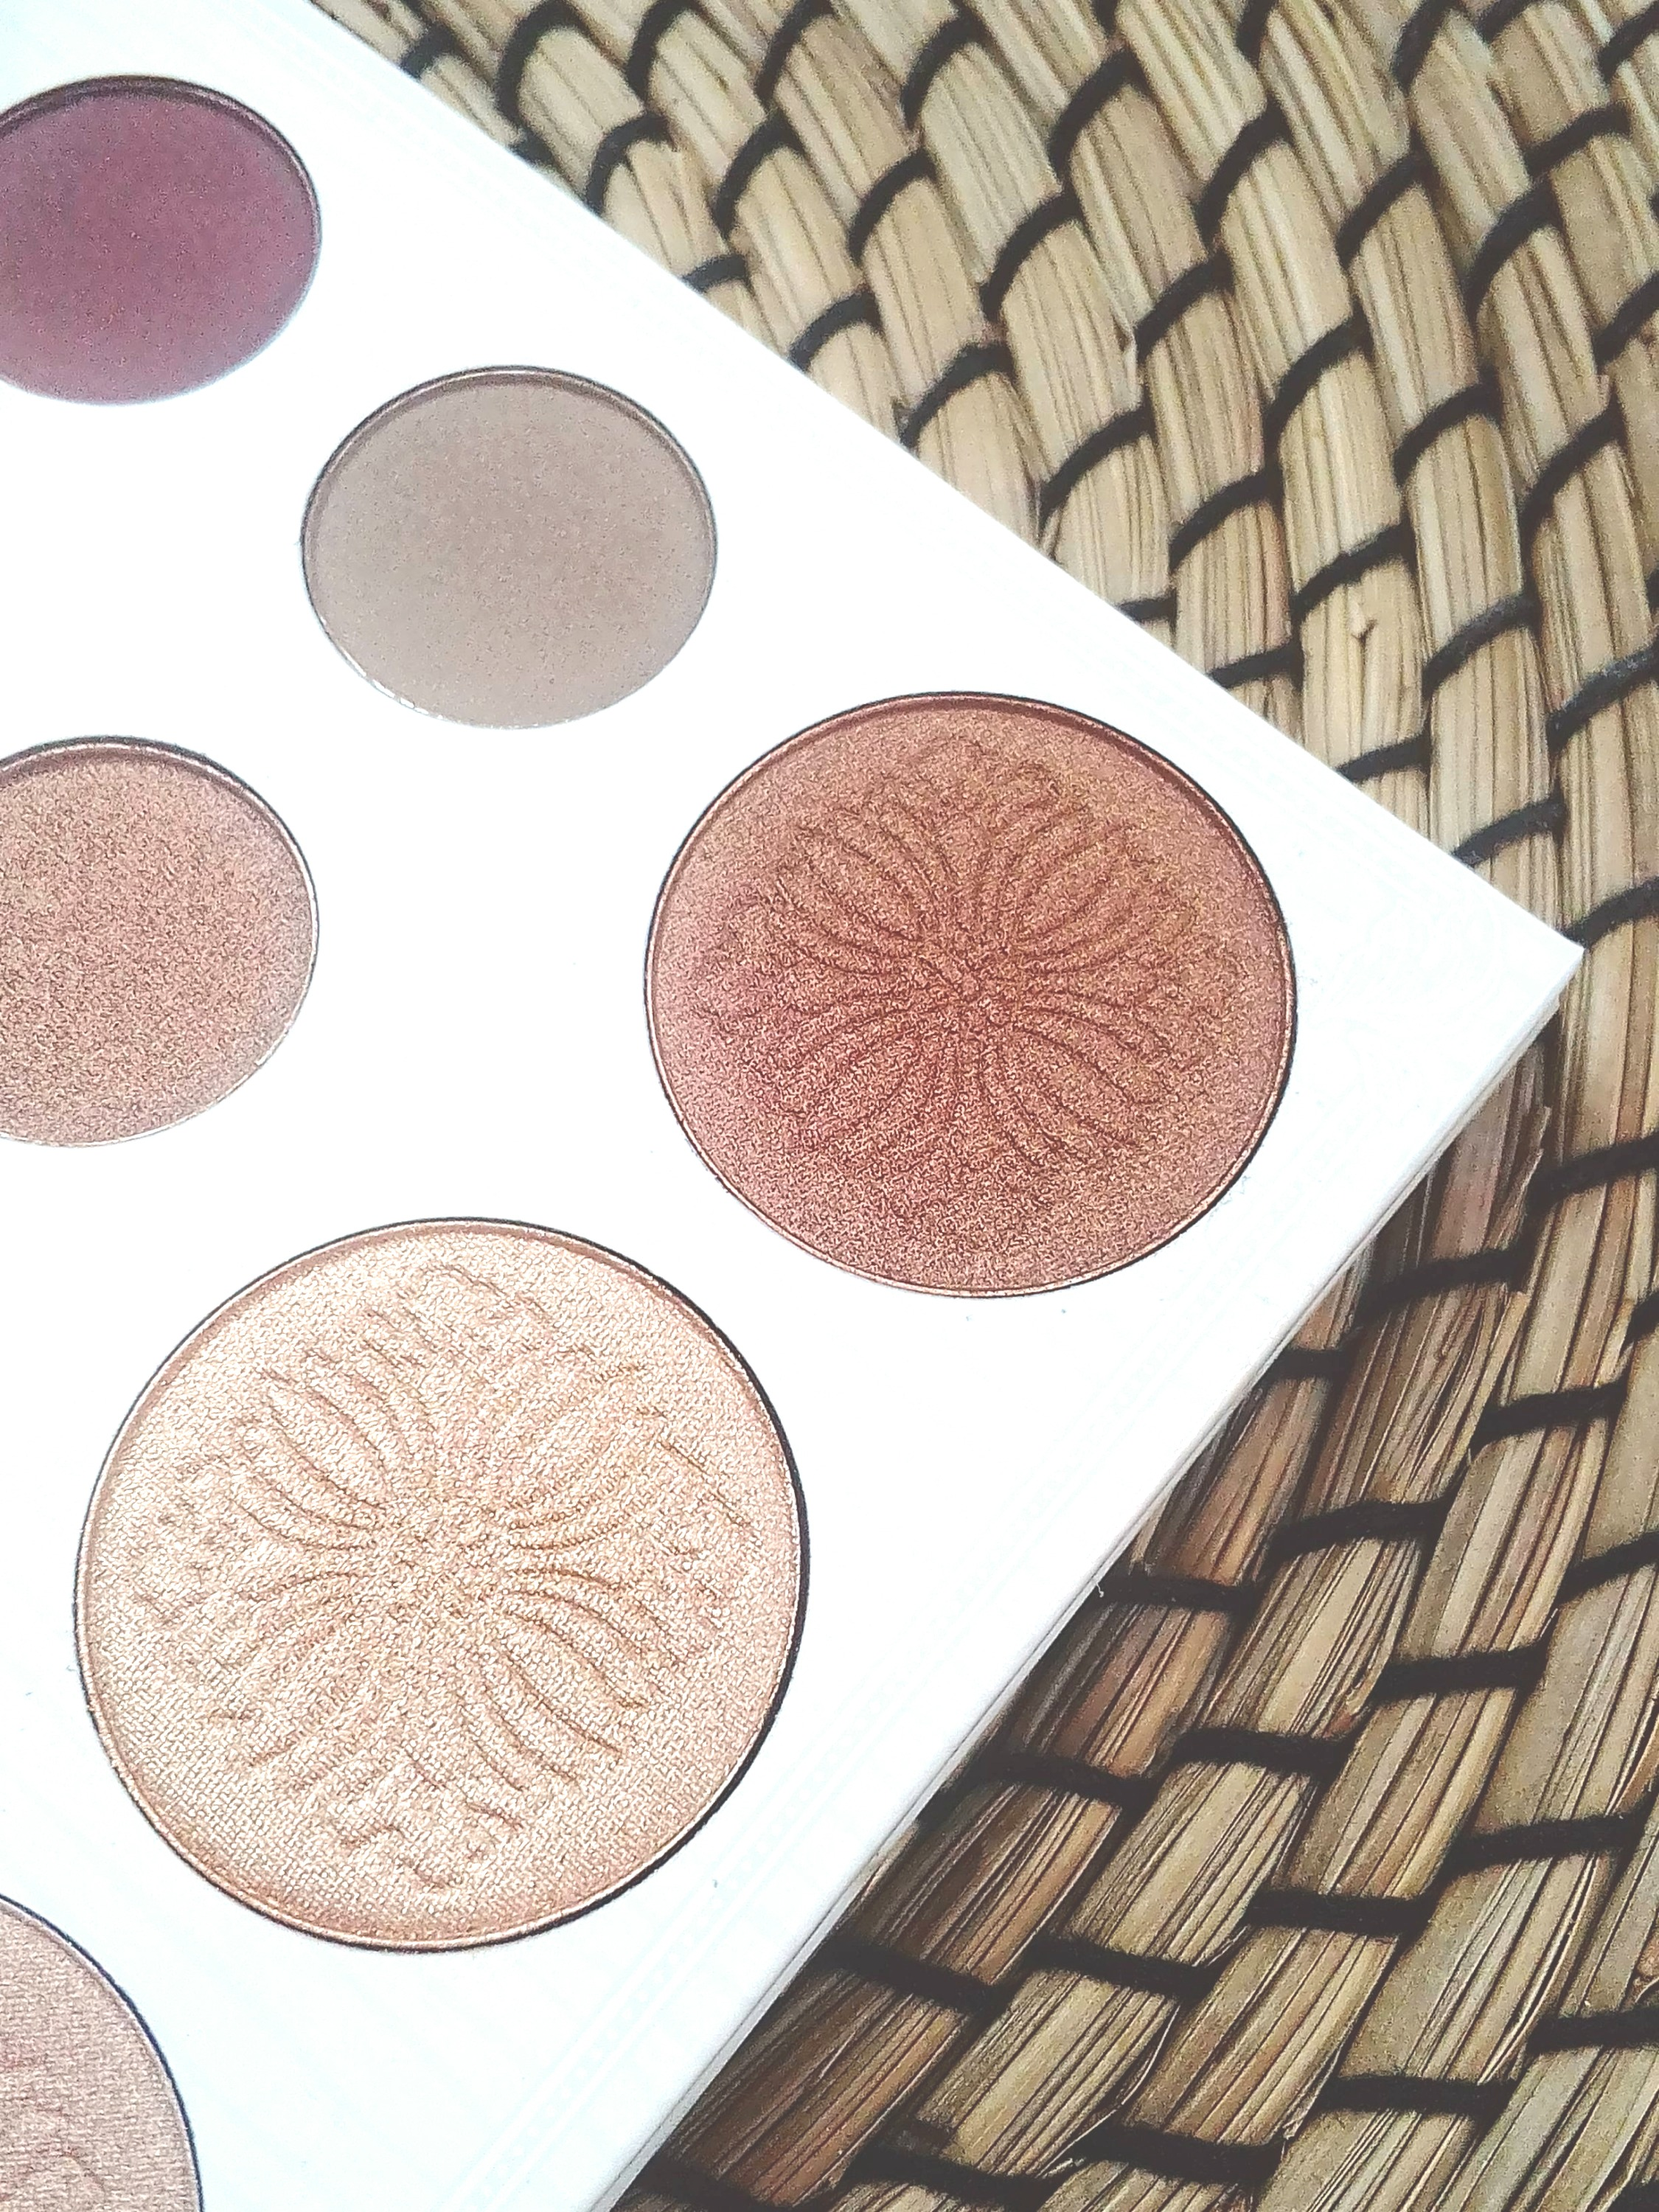 highlighter palette carli bybel BH cosmetics